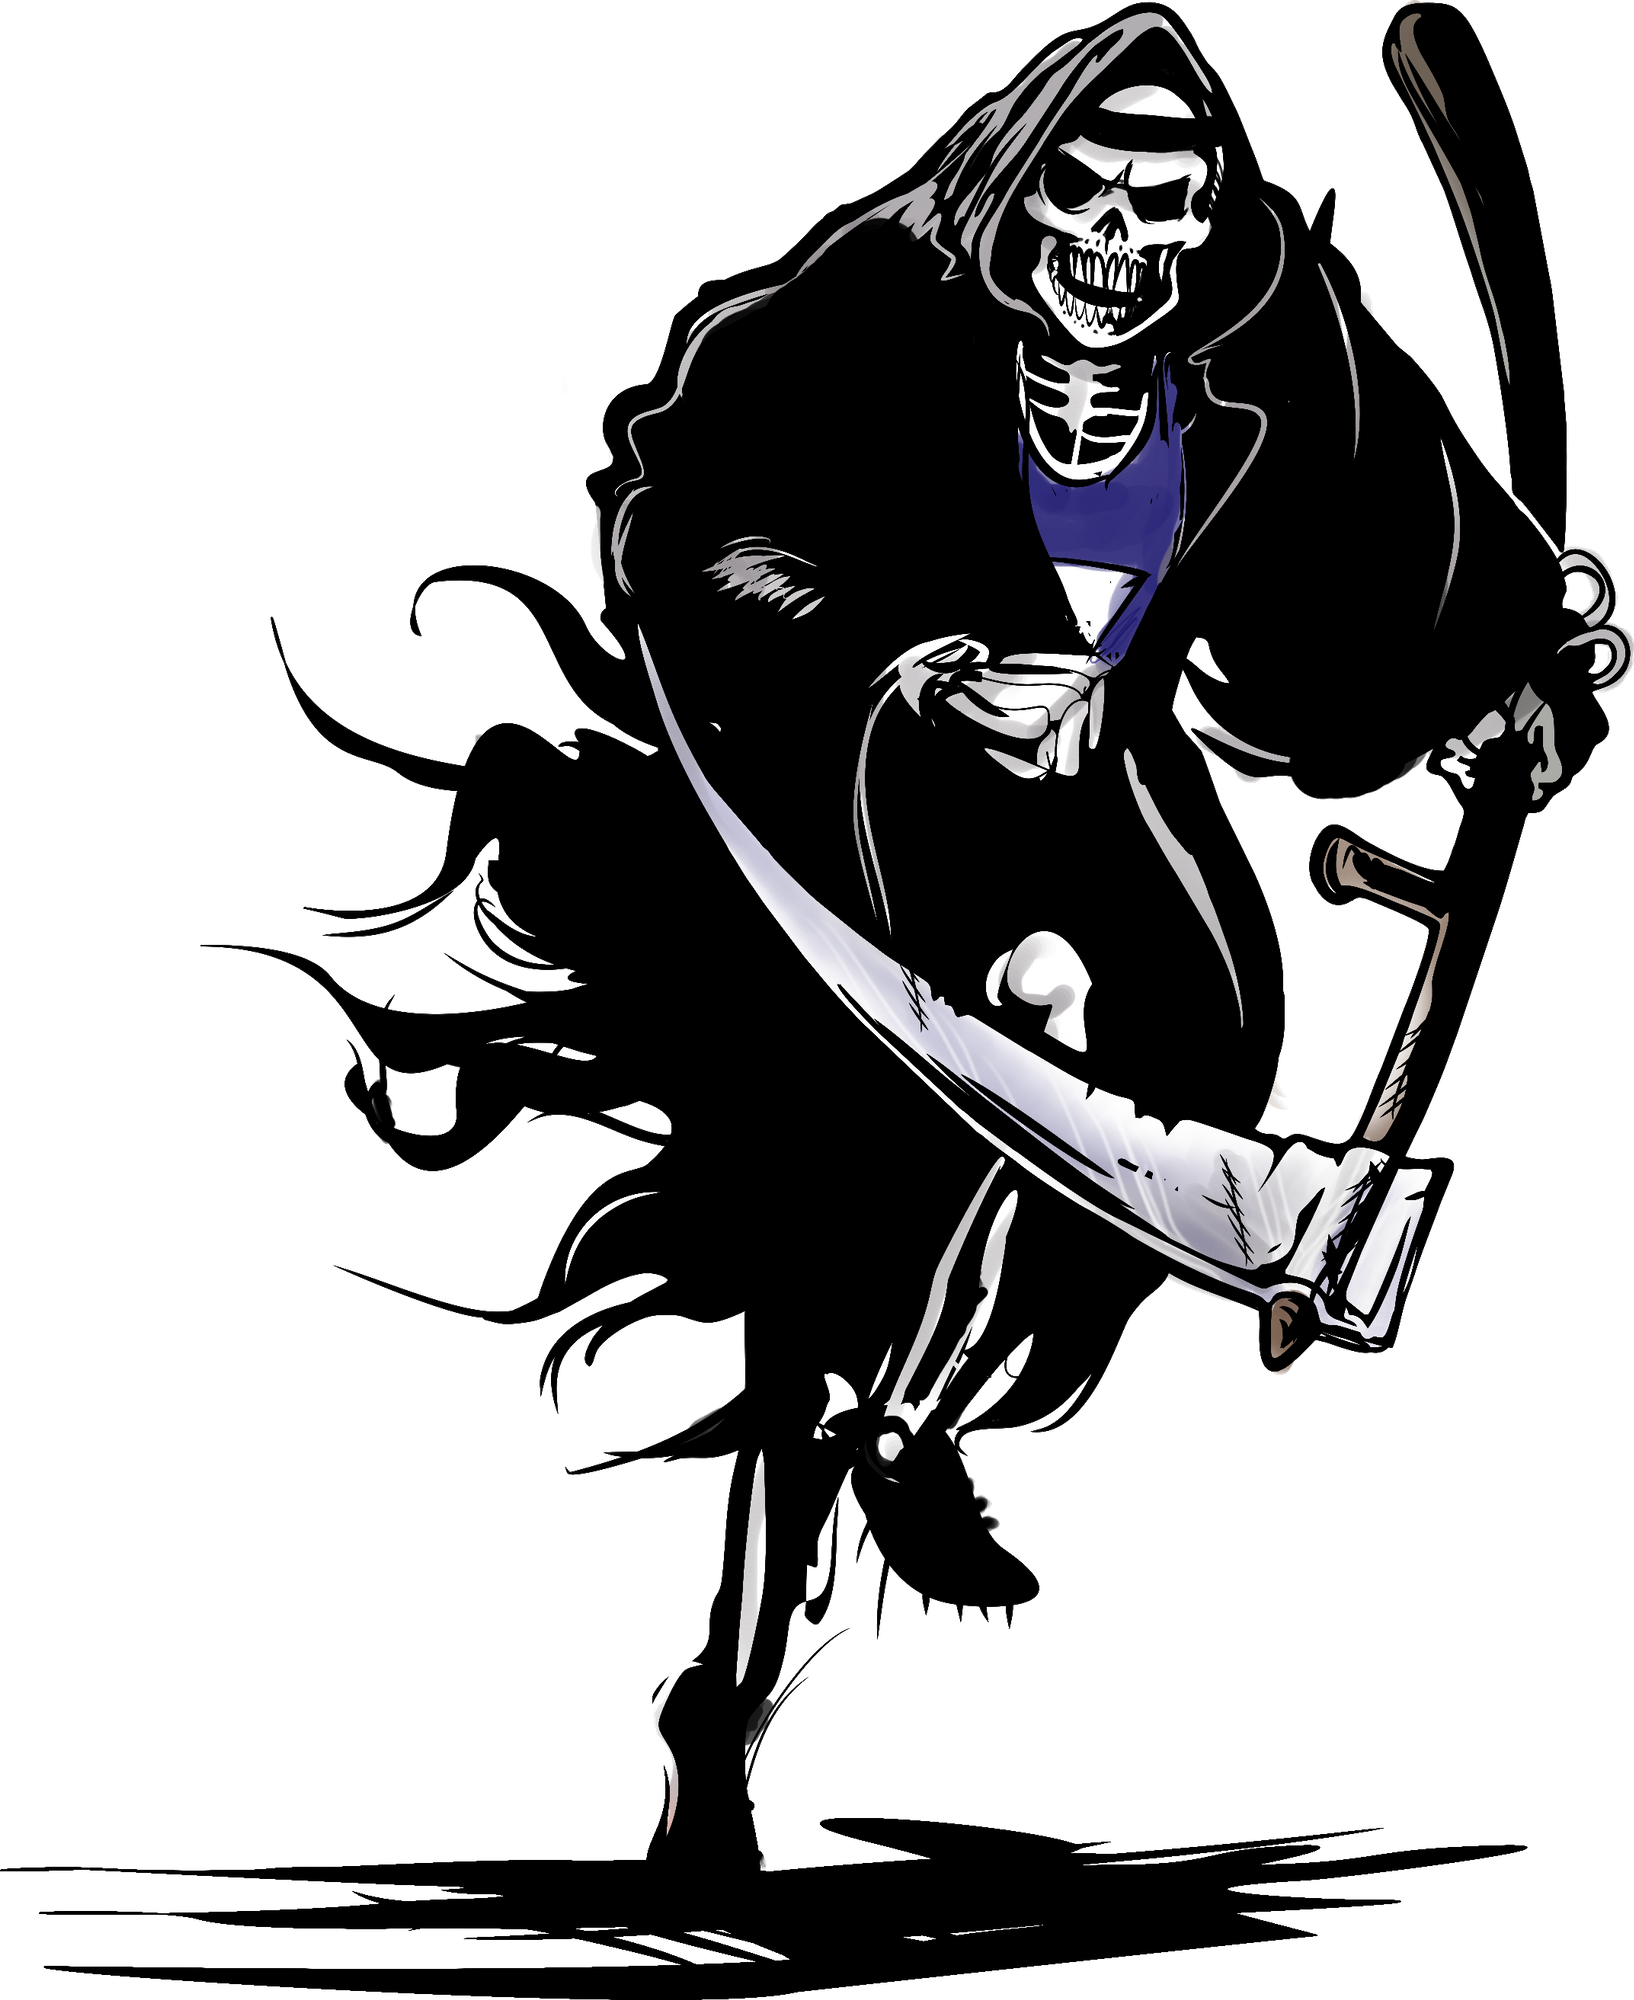 Reaper clipart grip In Reaper Athlete Running by